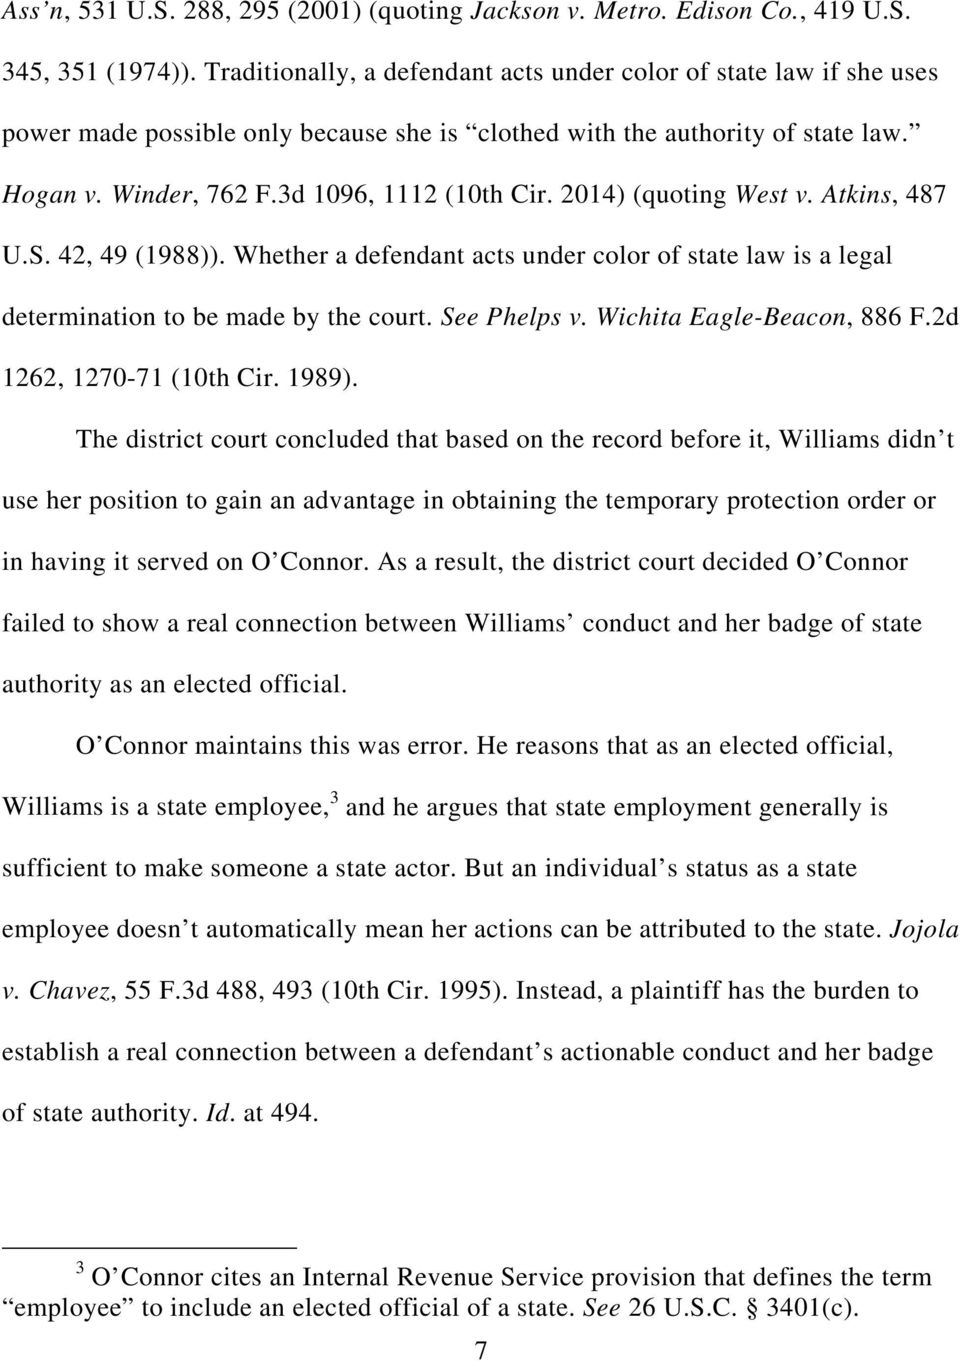 2014) (quoting West v. Atkins, 487 U.S. 42, 49 (1988)). Whether a defendant acts under color of state law is a legal determination to be made by the court. See Phelps v. Wichita Eagle-Beacon, 886 F.